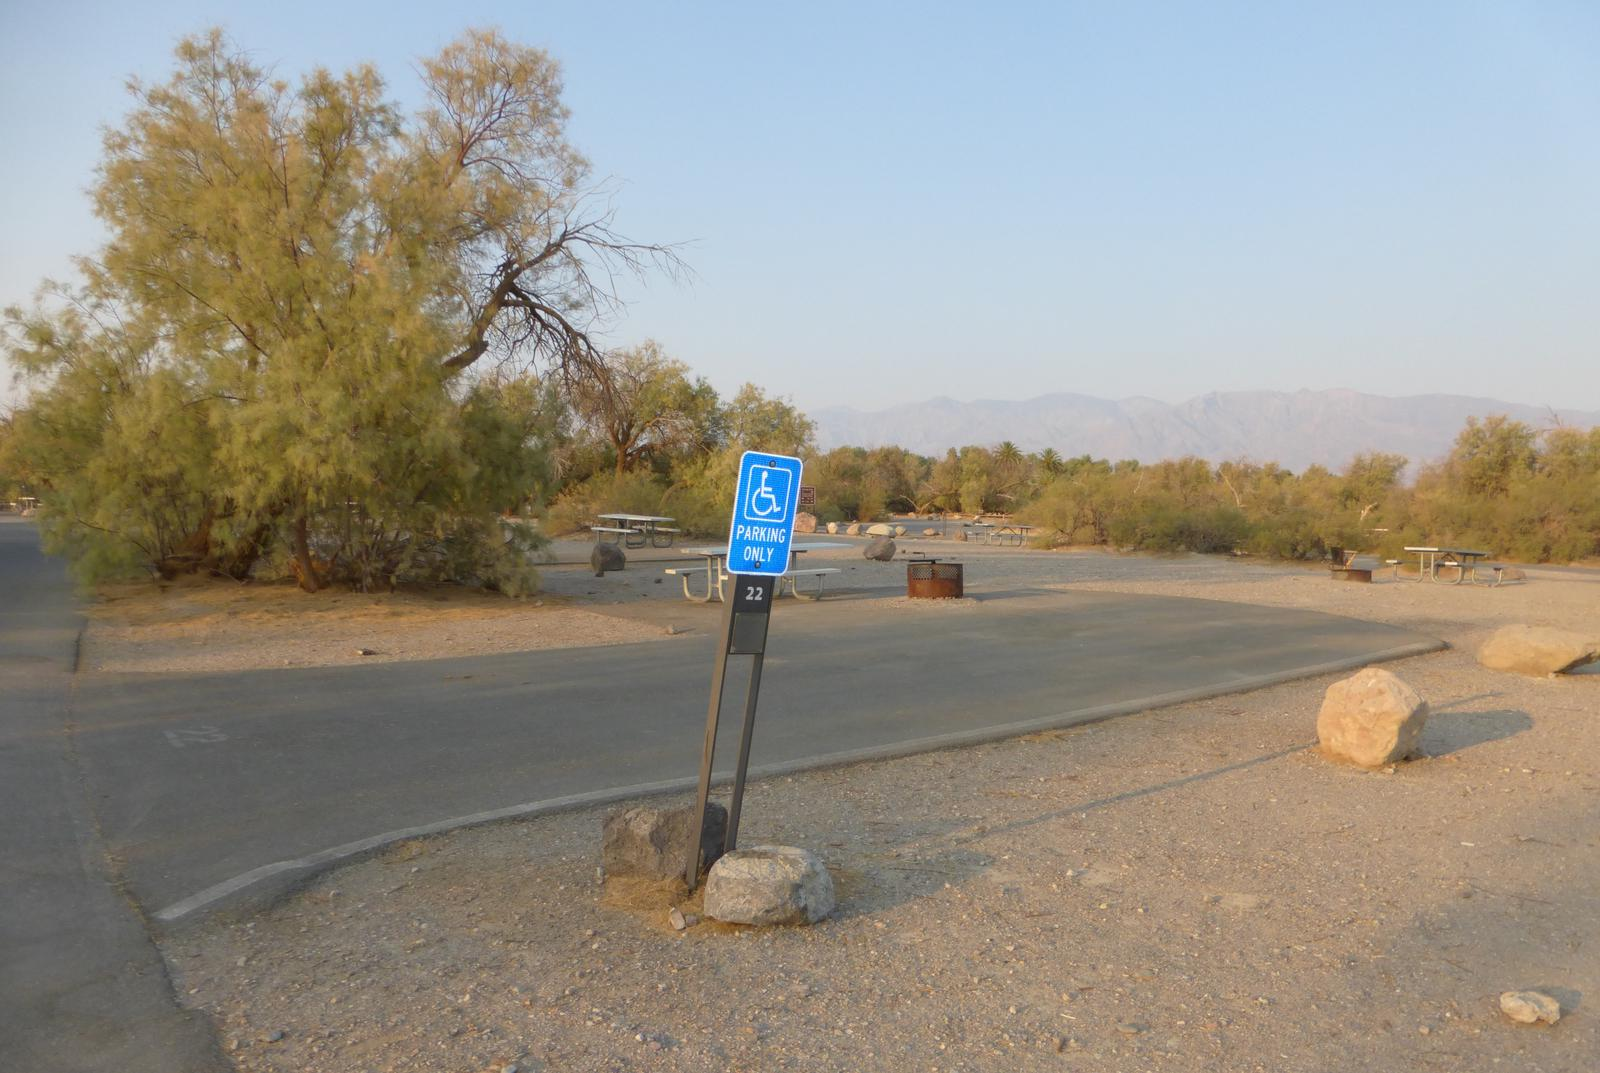 Furnace Creek Campground standard nonelectric ADA site #22 with accessible picnic table and fire ring.